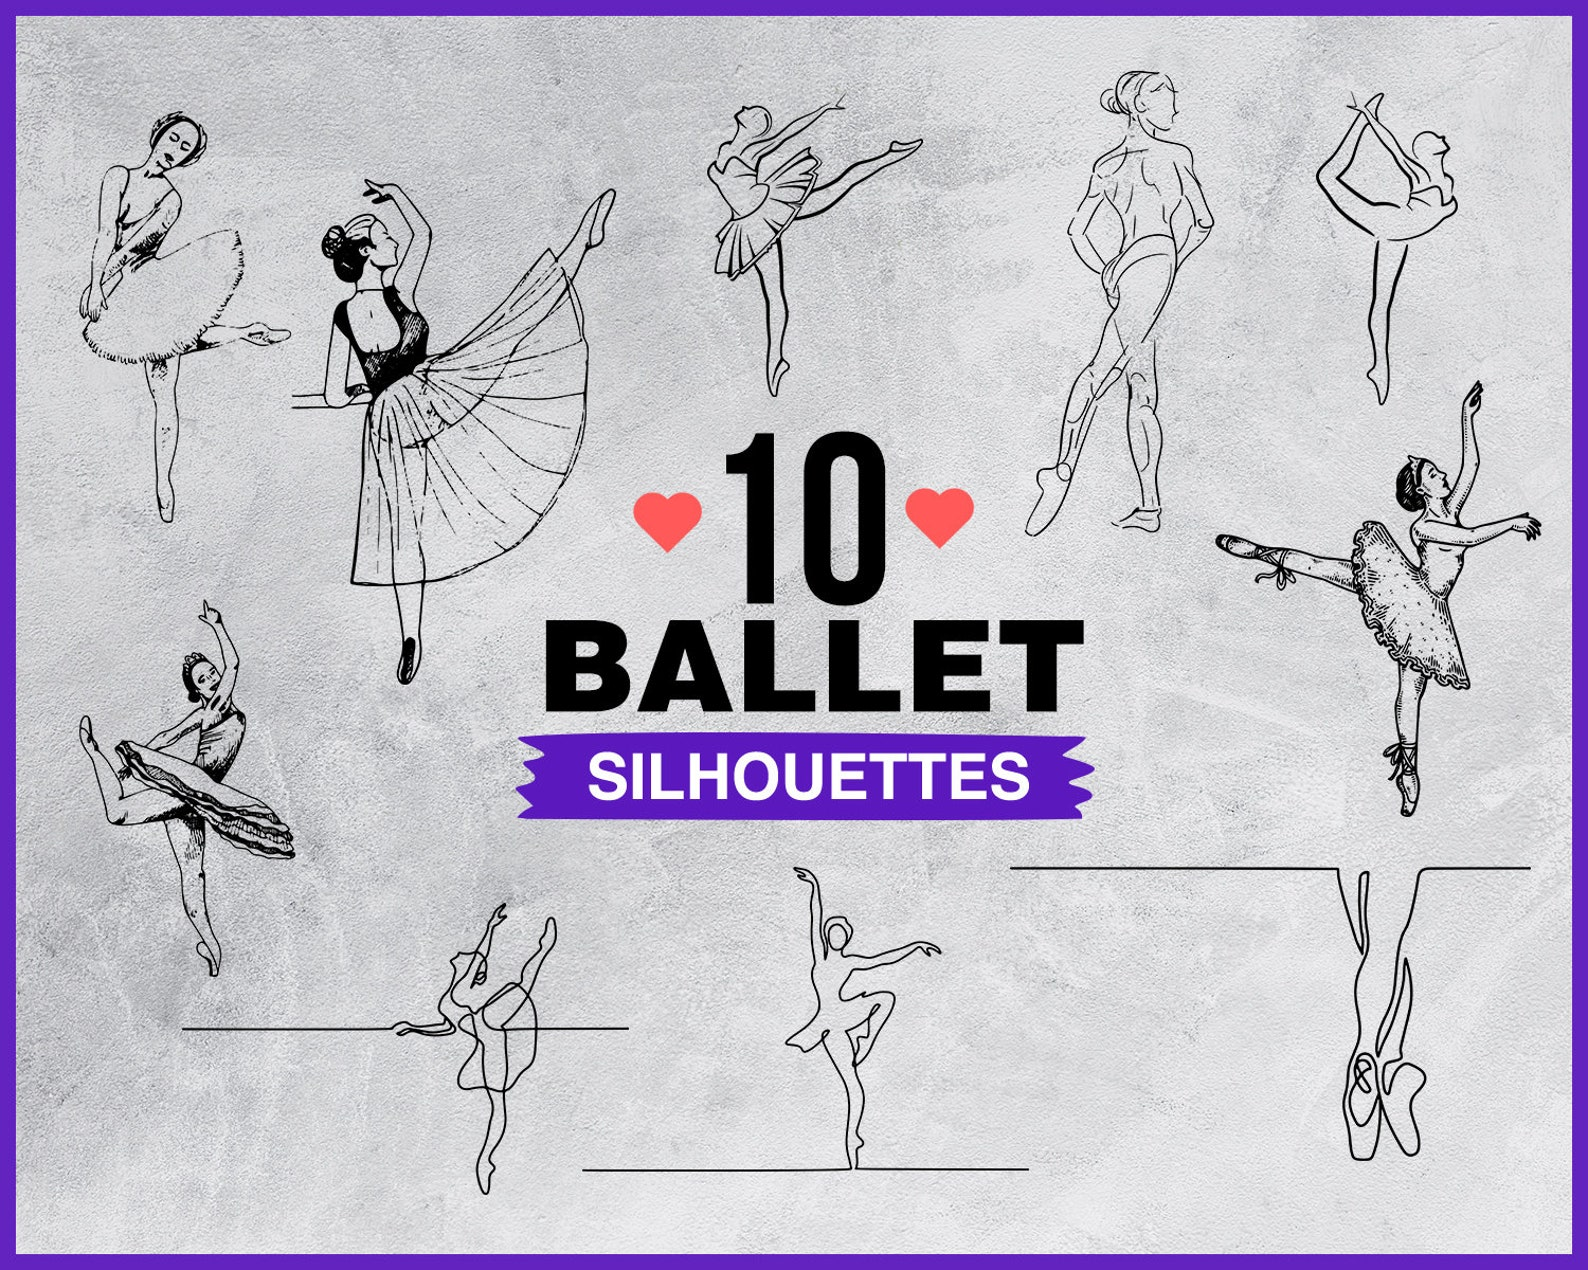 ballet svg, ballerina svg, dance svg, dancer svg, svg files for cricut, ballet clipart, ballet cut file, ballet dancer, ballet s